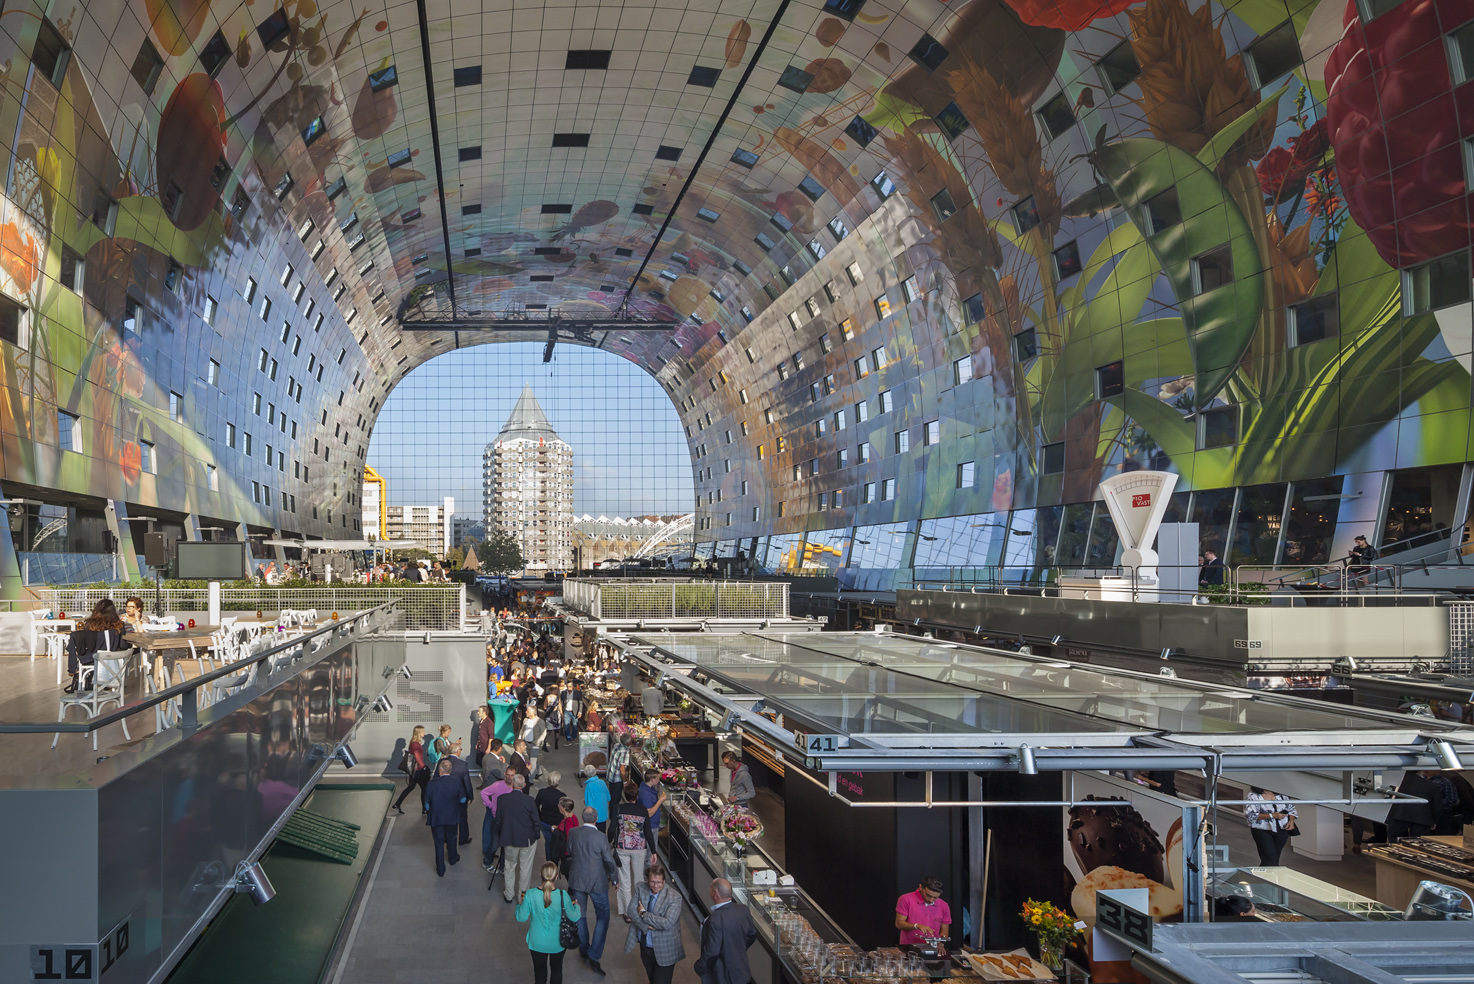 rotterdam 39 s dutch person aquarium market hall offers residents a vibrant diverse mixed use. Black Bedroom Furniture Sets. Home Design Ideas